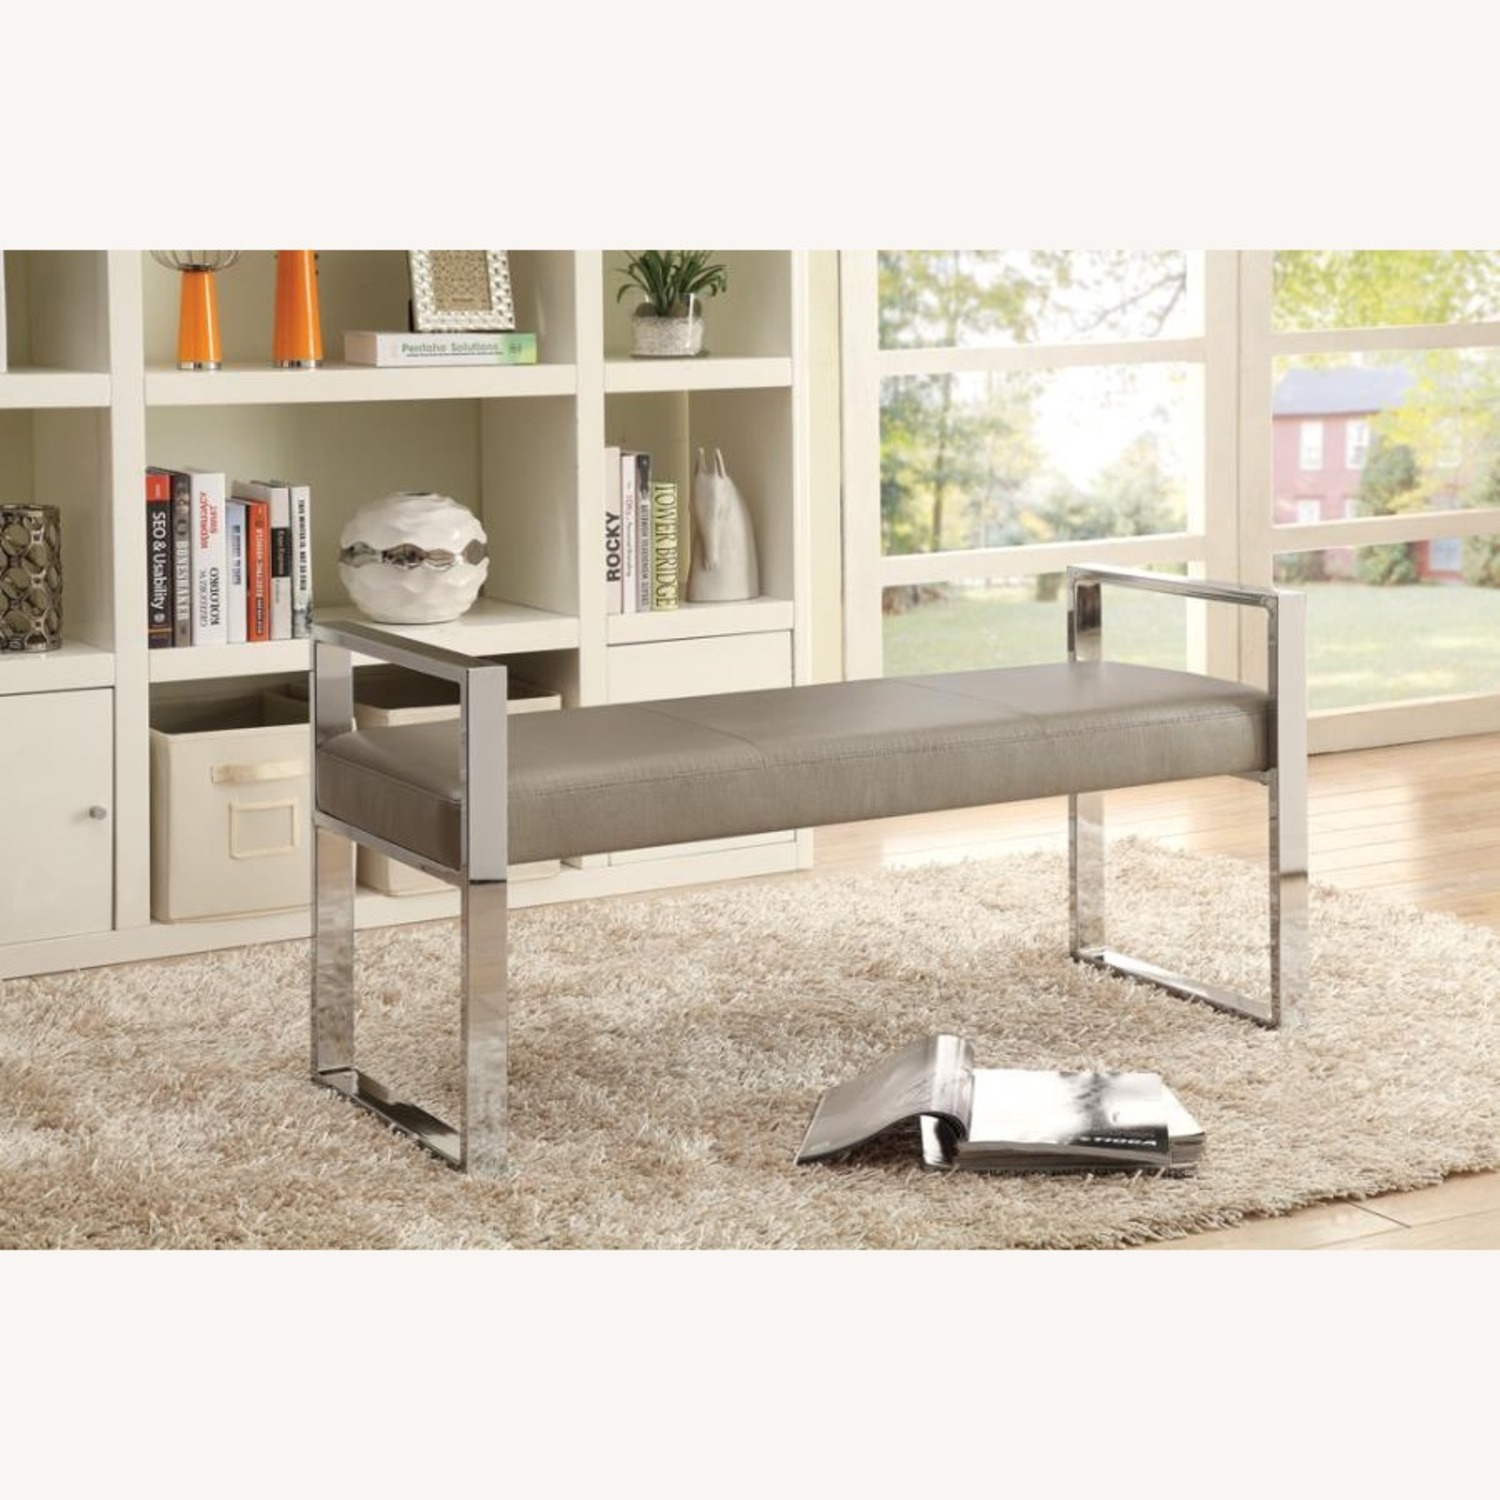 Bench In Champagne Leatherette W/ Chrome Base - image-2